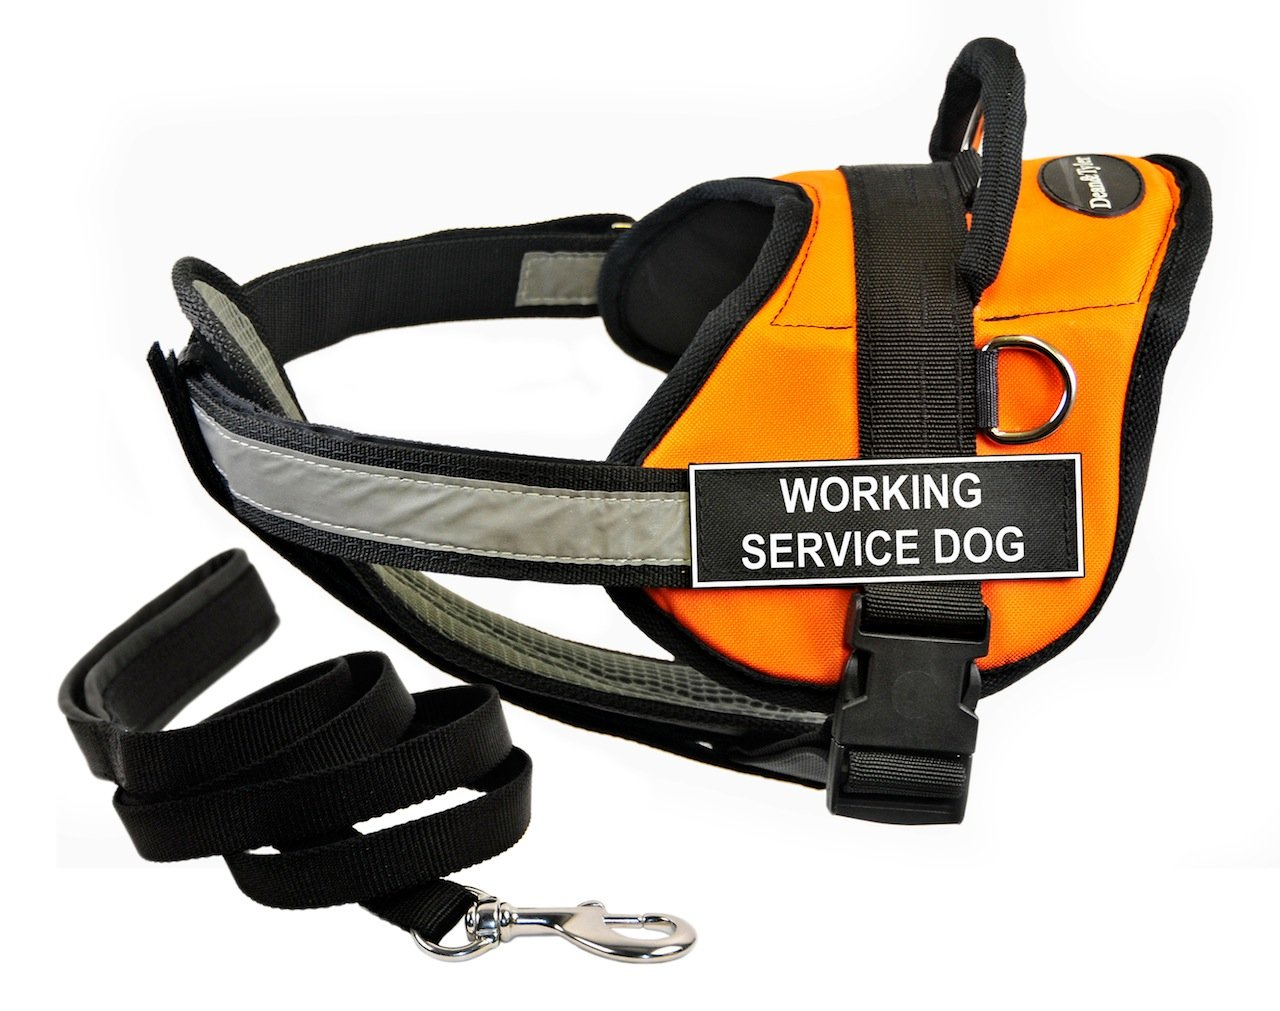 Dean & Tyler DT Works orange WORKING SERVICE DOG Harness with Chest Padding, X-Small, and Black 6 ft Padded Puppy Leash.